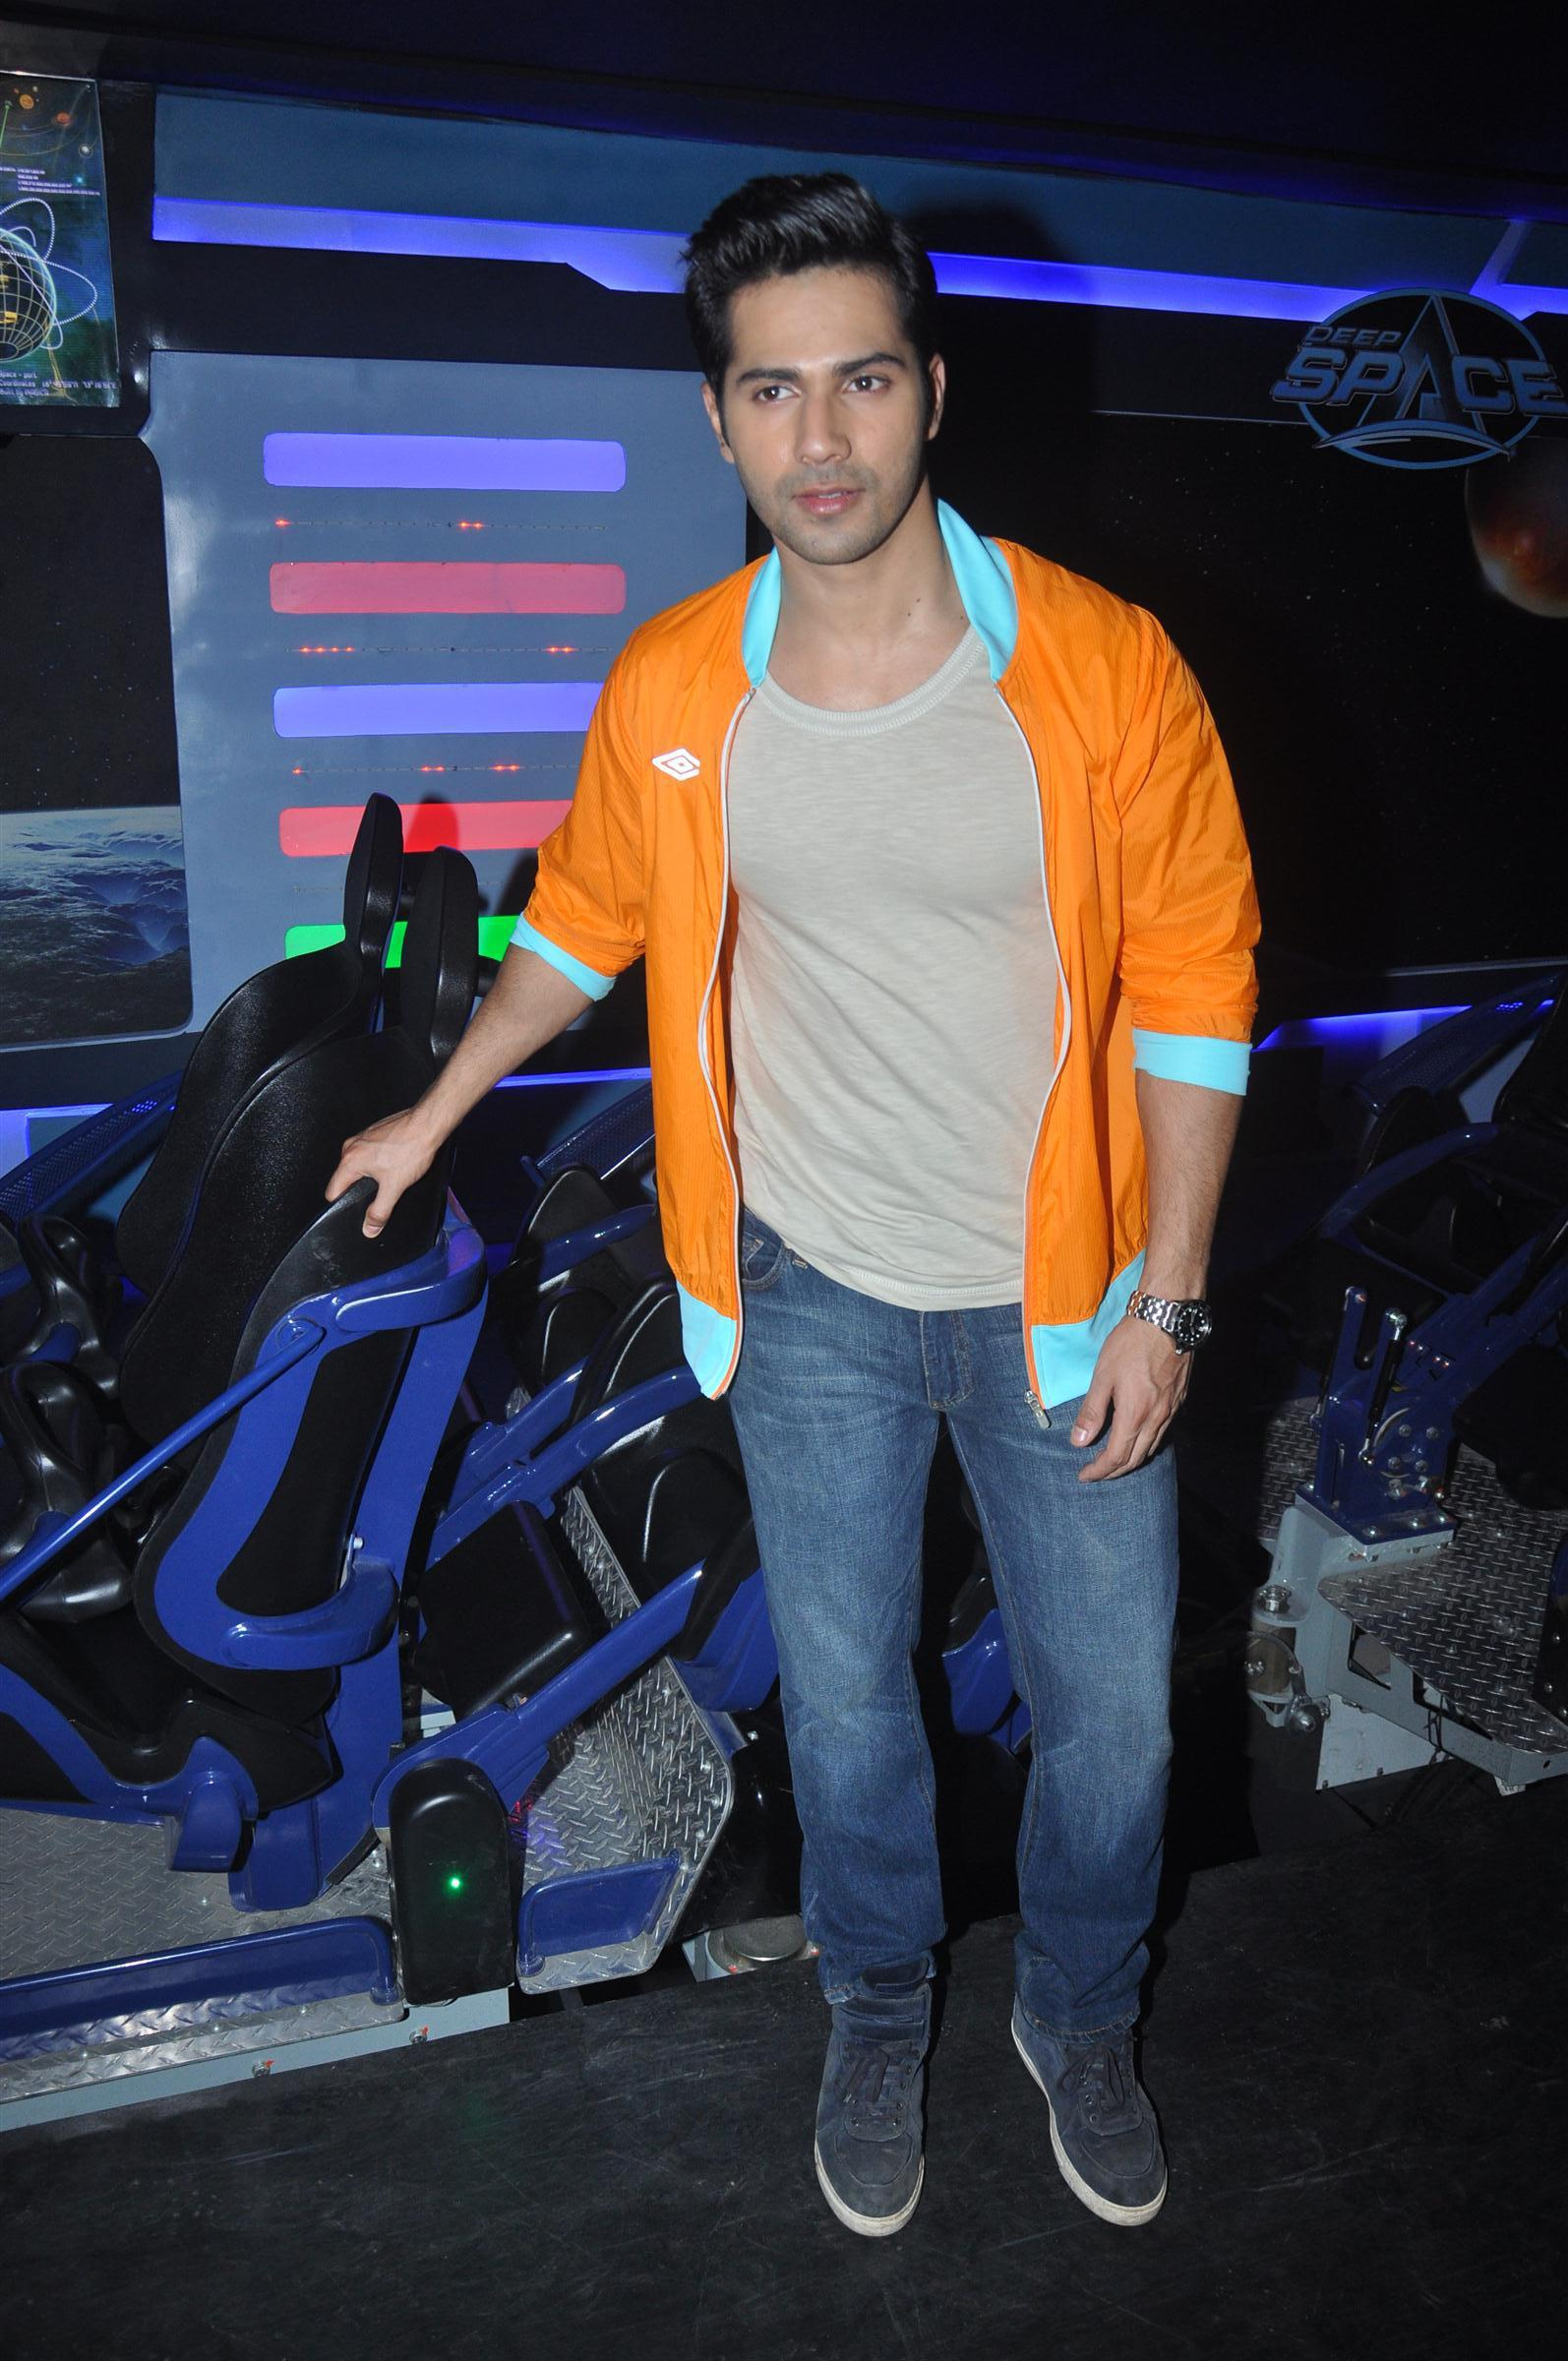 varun-dhawan-unveils-deep-space-ride-at-adlabs-imagica-40180